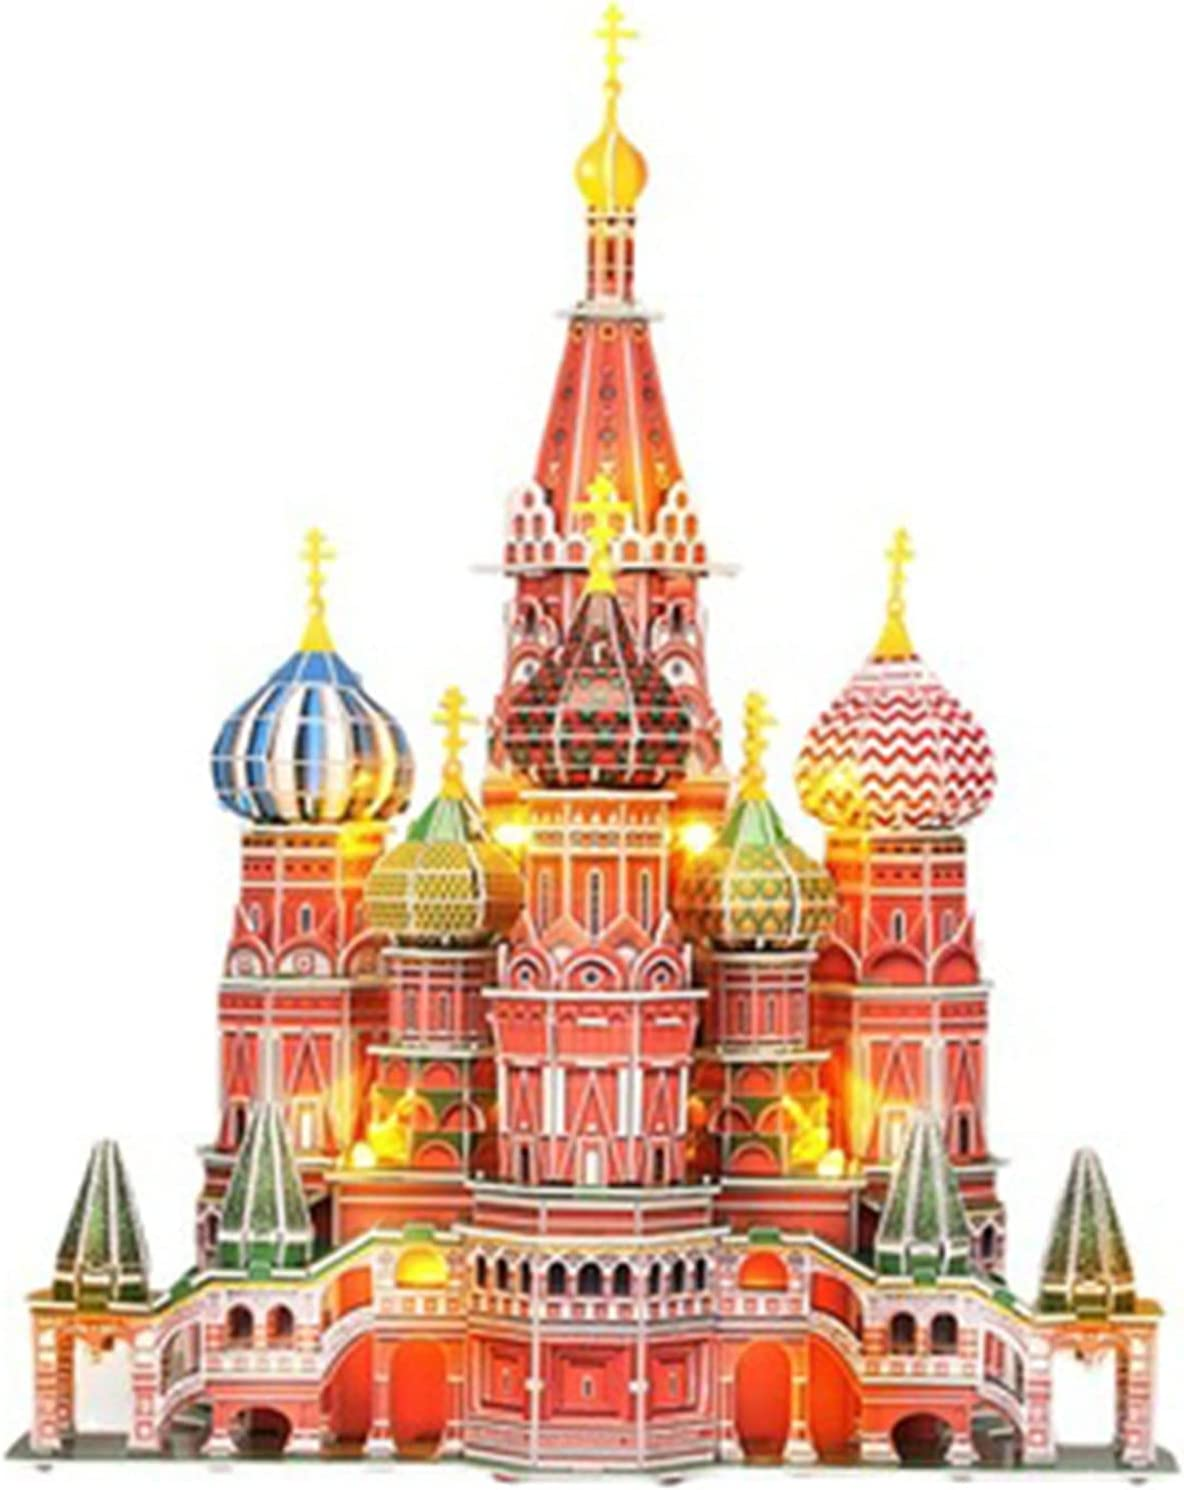 LED Russia Cathedral 3D Puzzles Cath Limited Max 62% OFF time trial price for St.Basil's Kids Adults